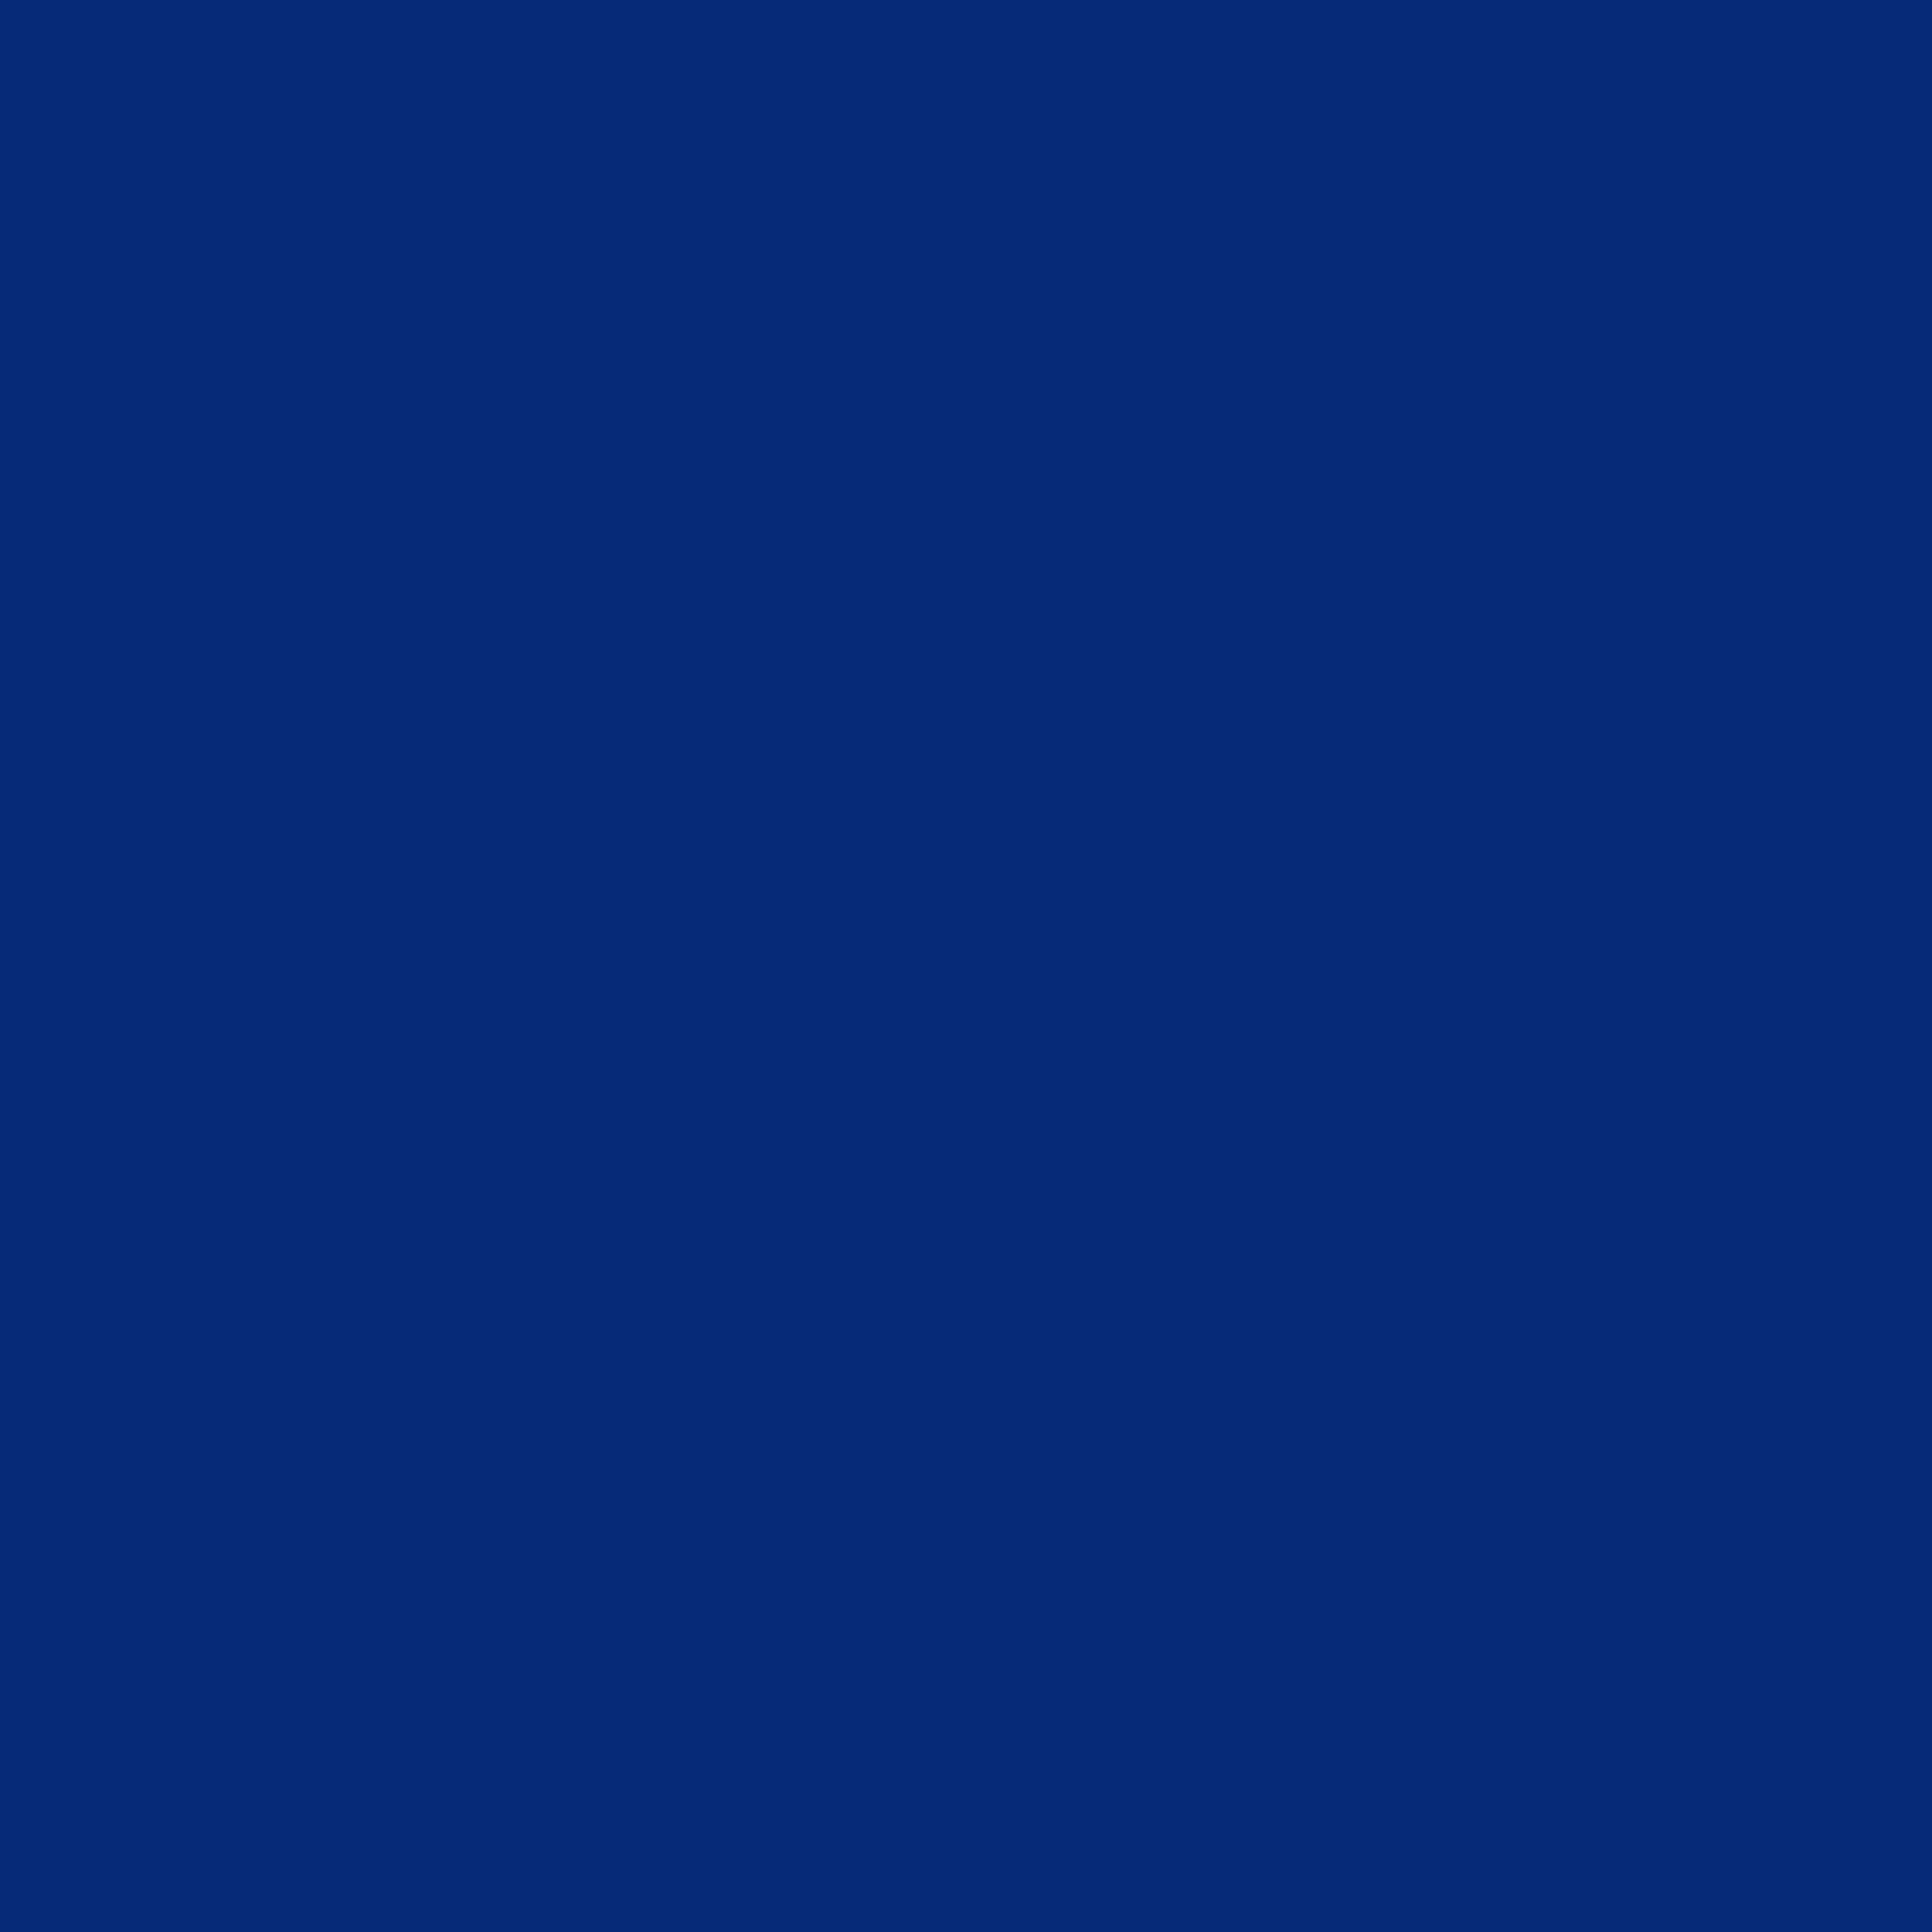 2048x2048 Catalina Blue Solid Color Background